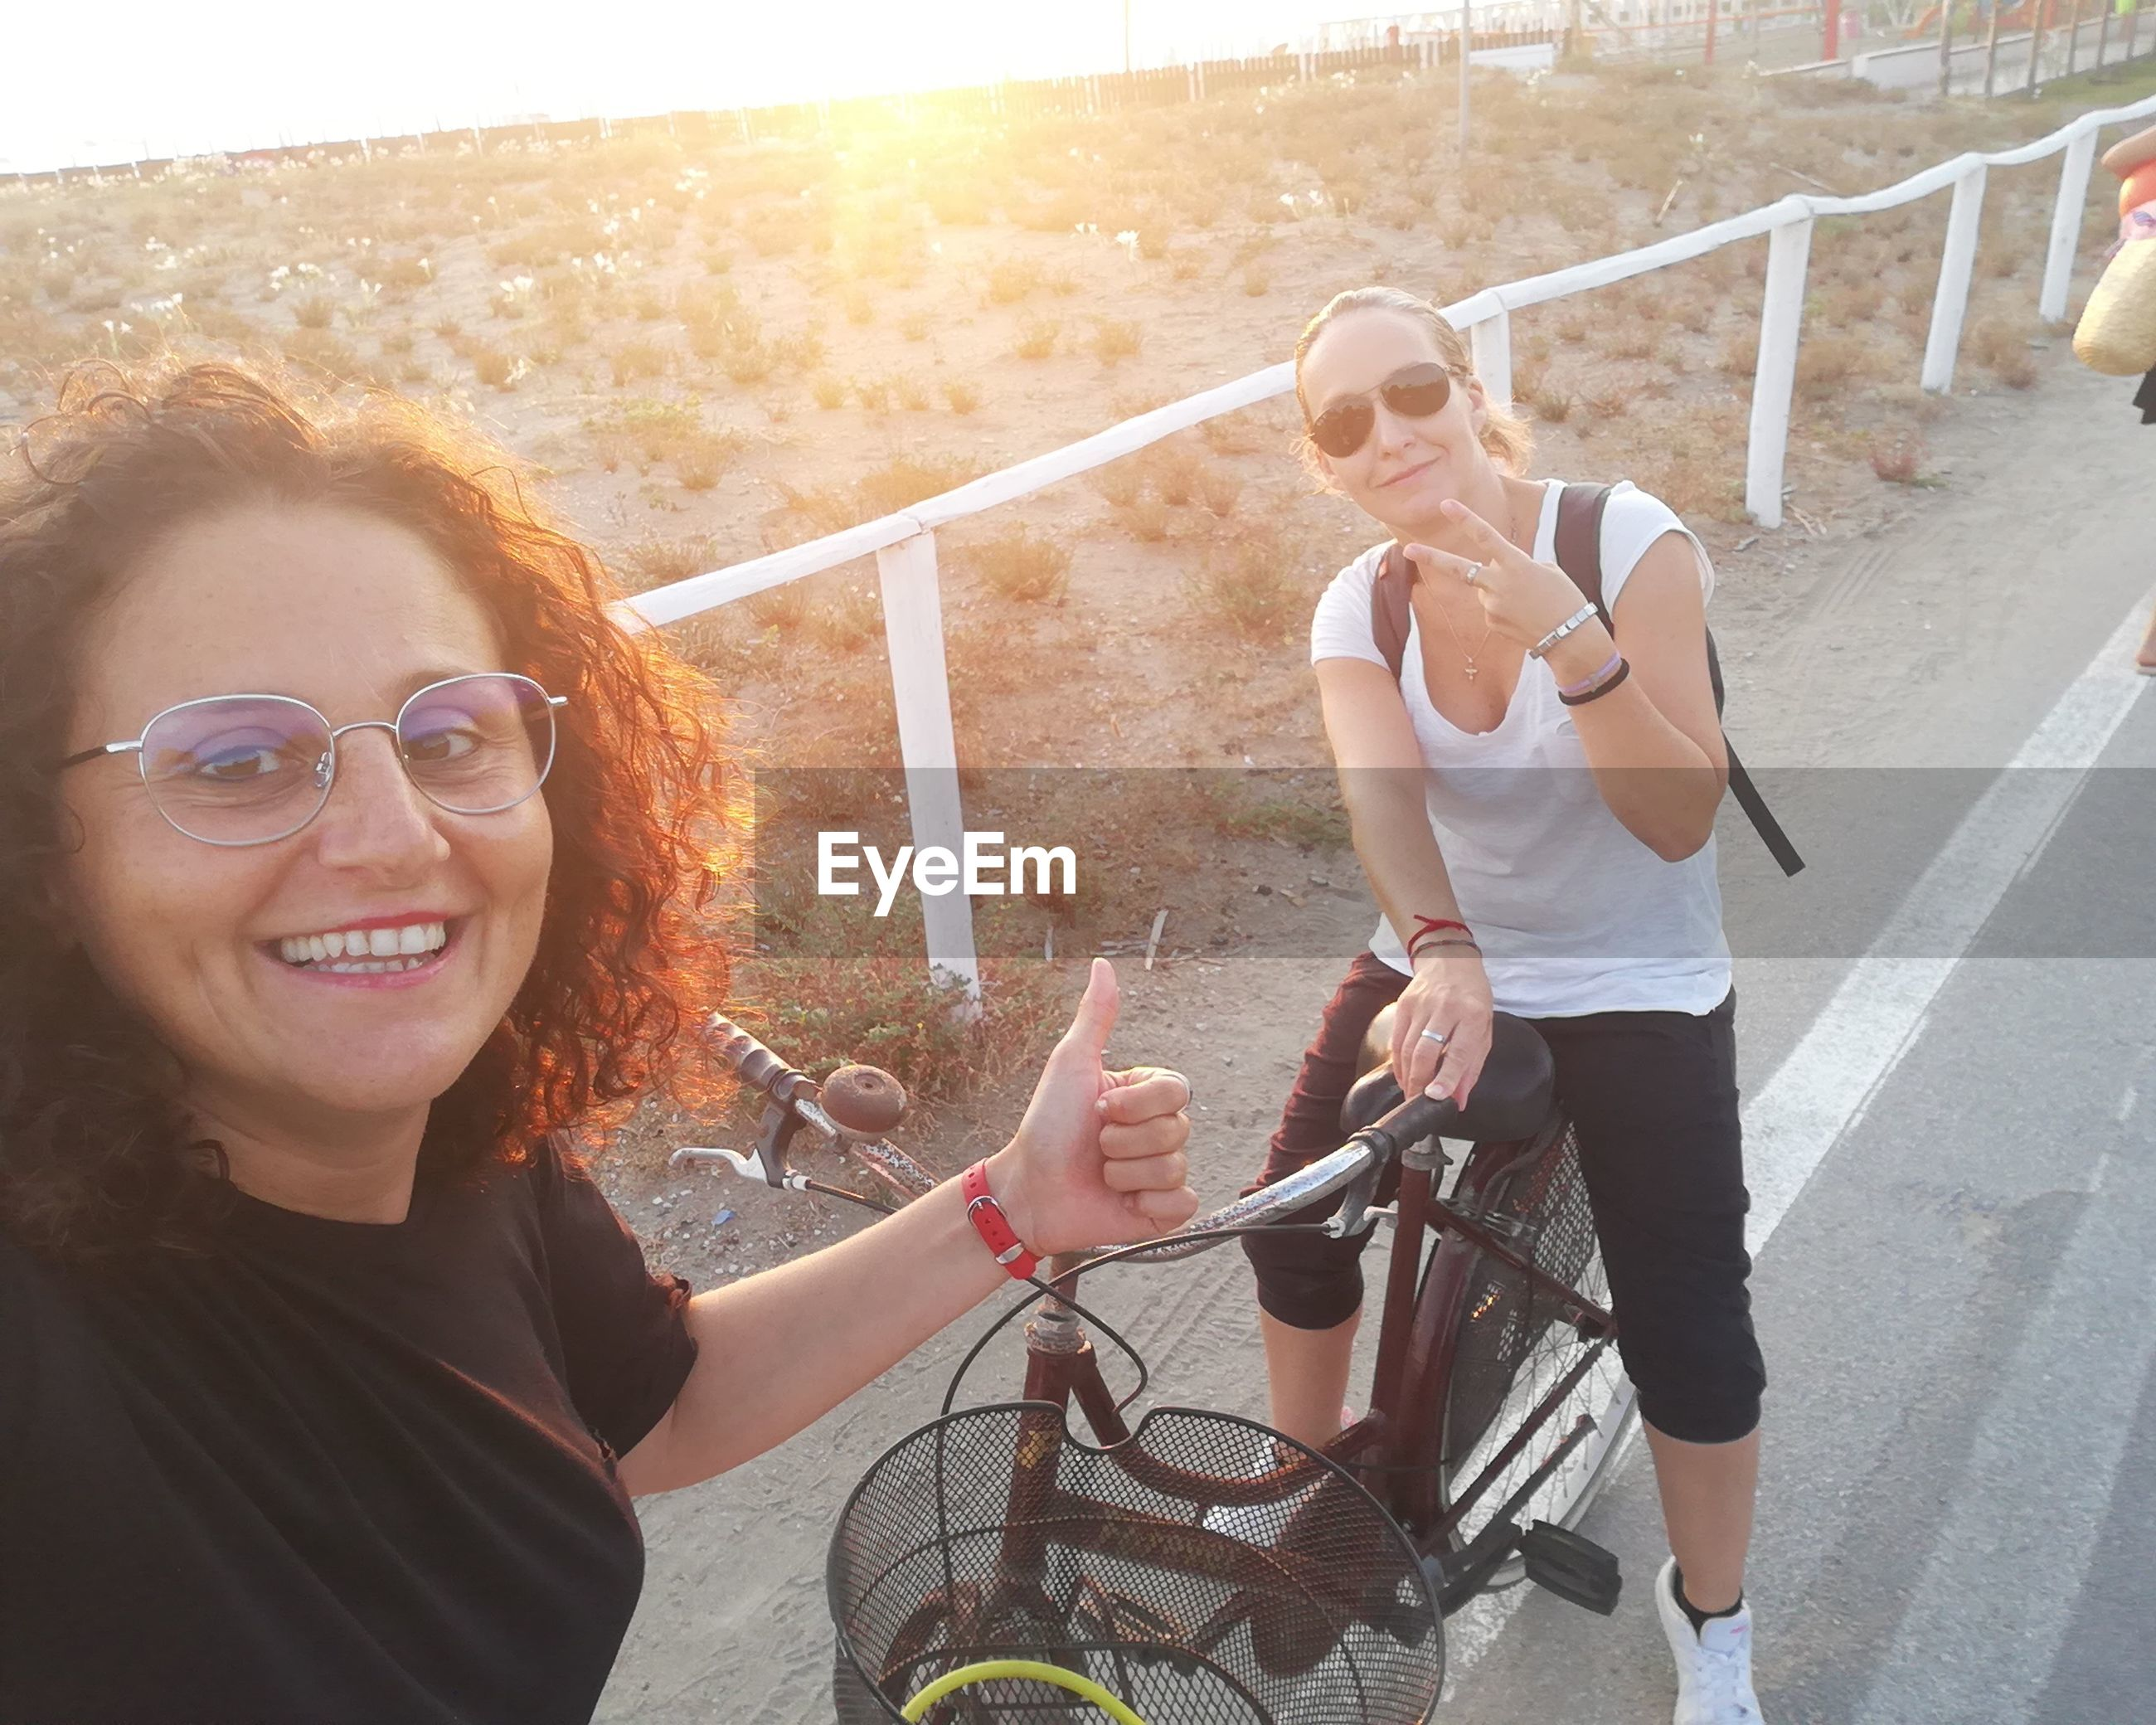 PORTRAIT OF SMILING YOUNG WOMAN RIDING SUNGLASSES ON A MAN